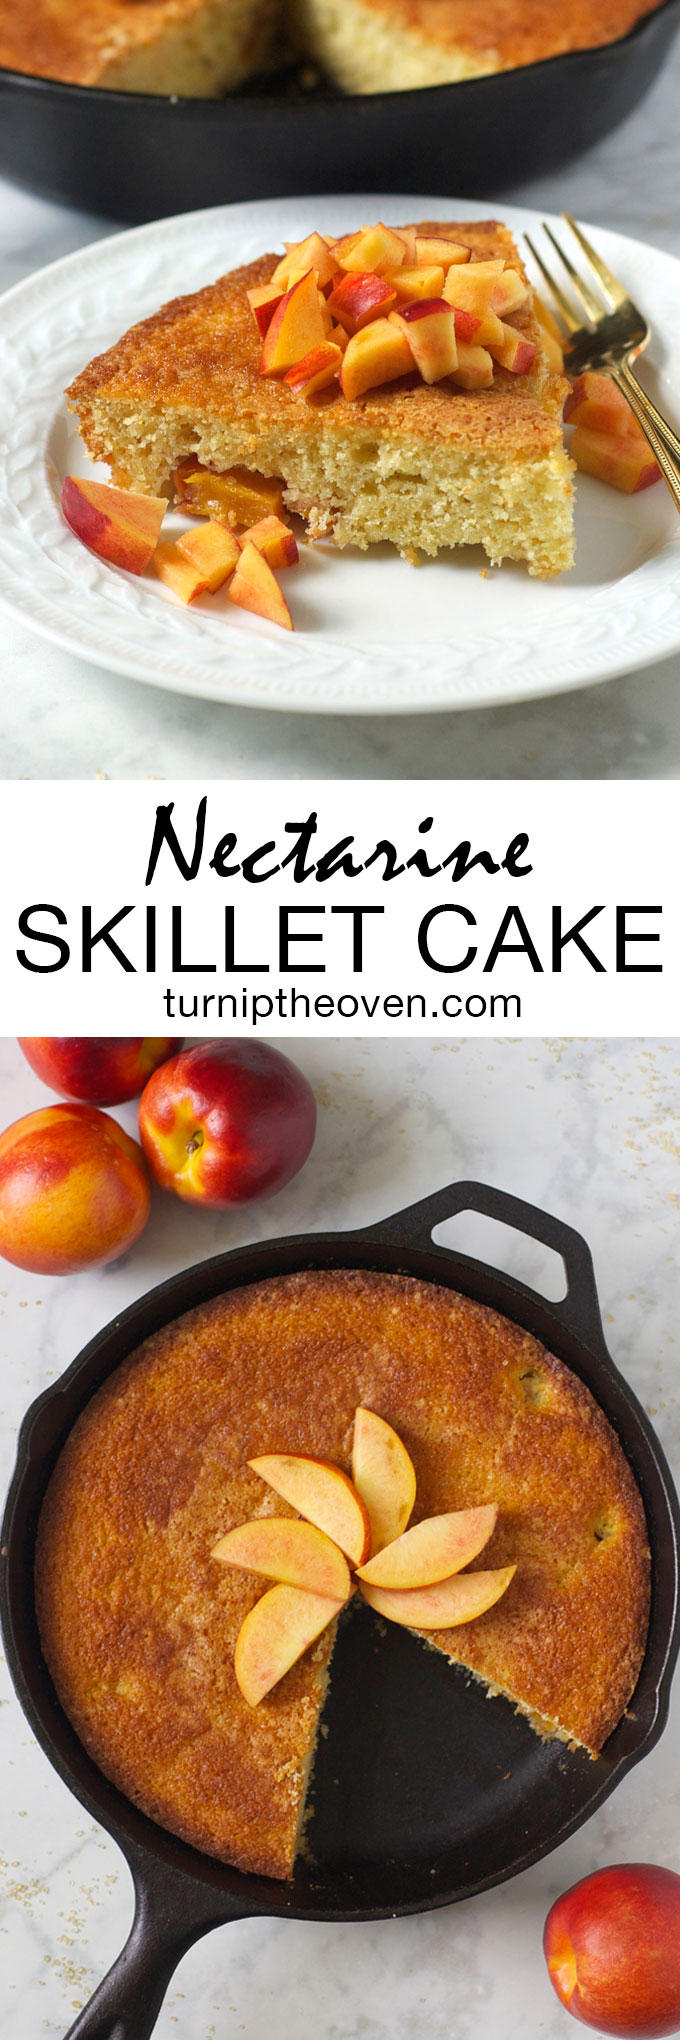 This simple, rustic skillet cake is bursting with juicy ripe nectarines. It's the perfect simple, summer dessert--or breakfast!